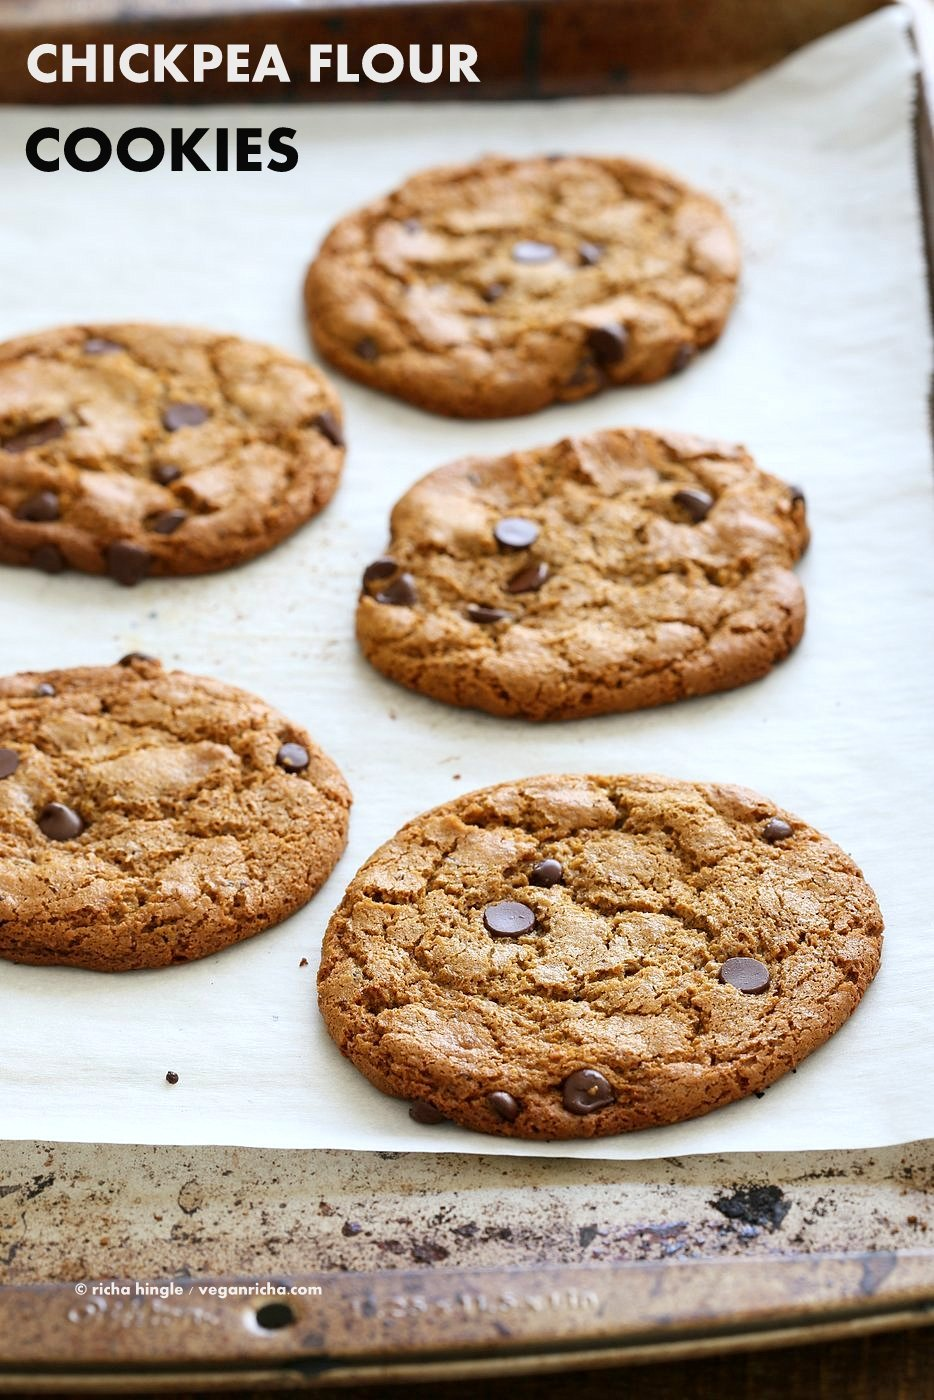 Can You Make Chocolate Chip Cookies Without Flour